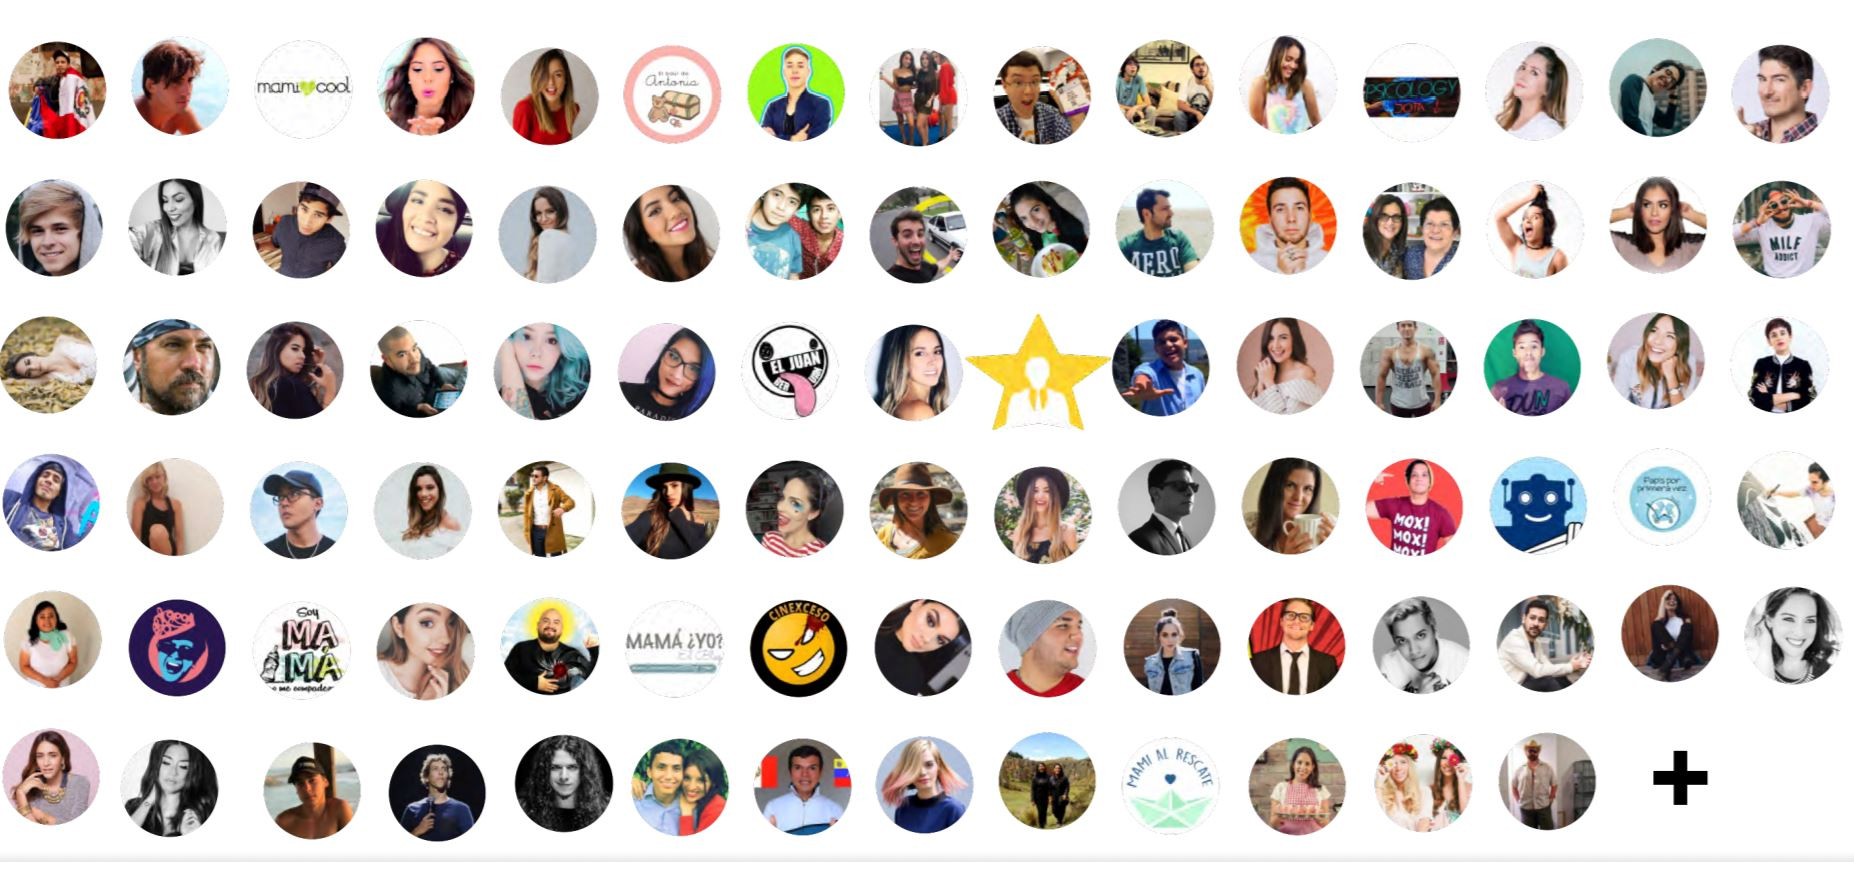 ¿Son eficientes los influencers para las marcas?